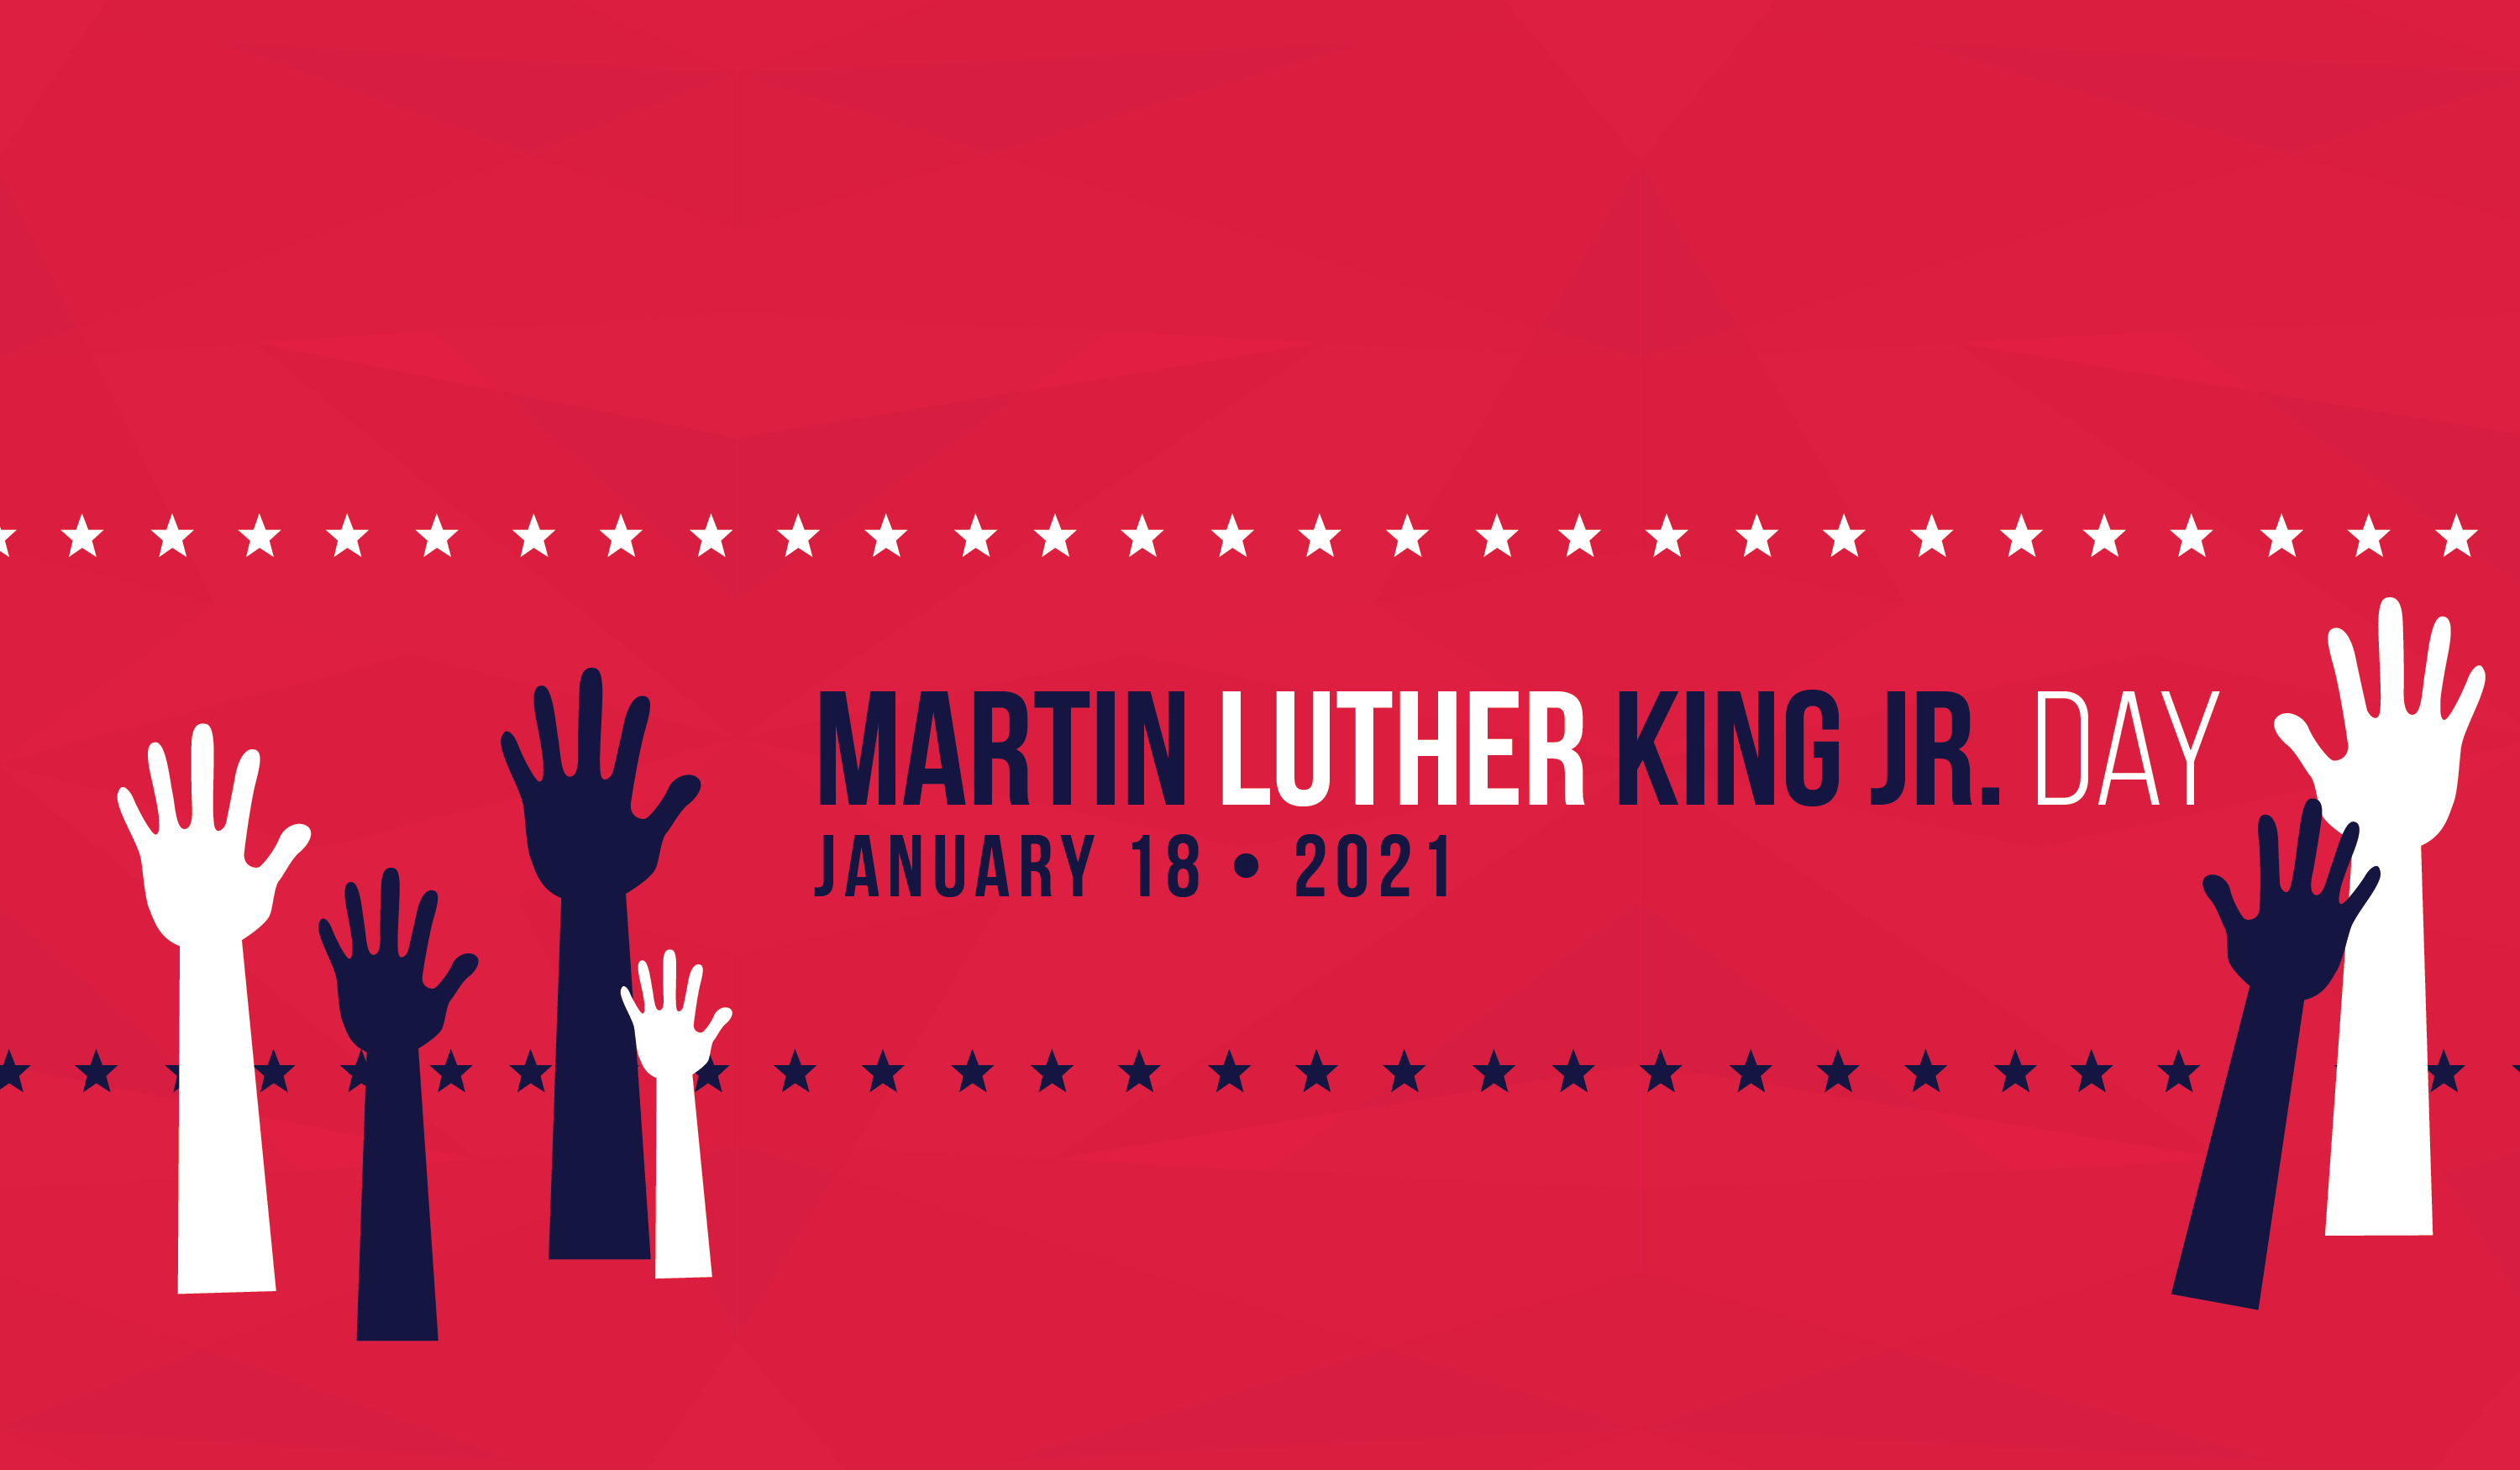 Martin Luther King Jr. Day January 18 - 2021